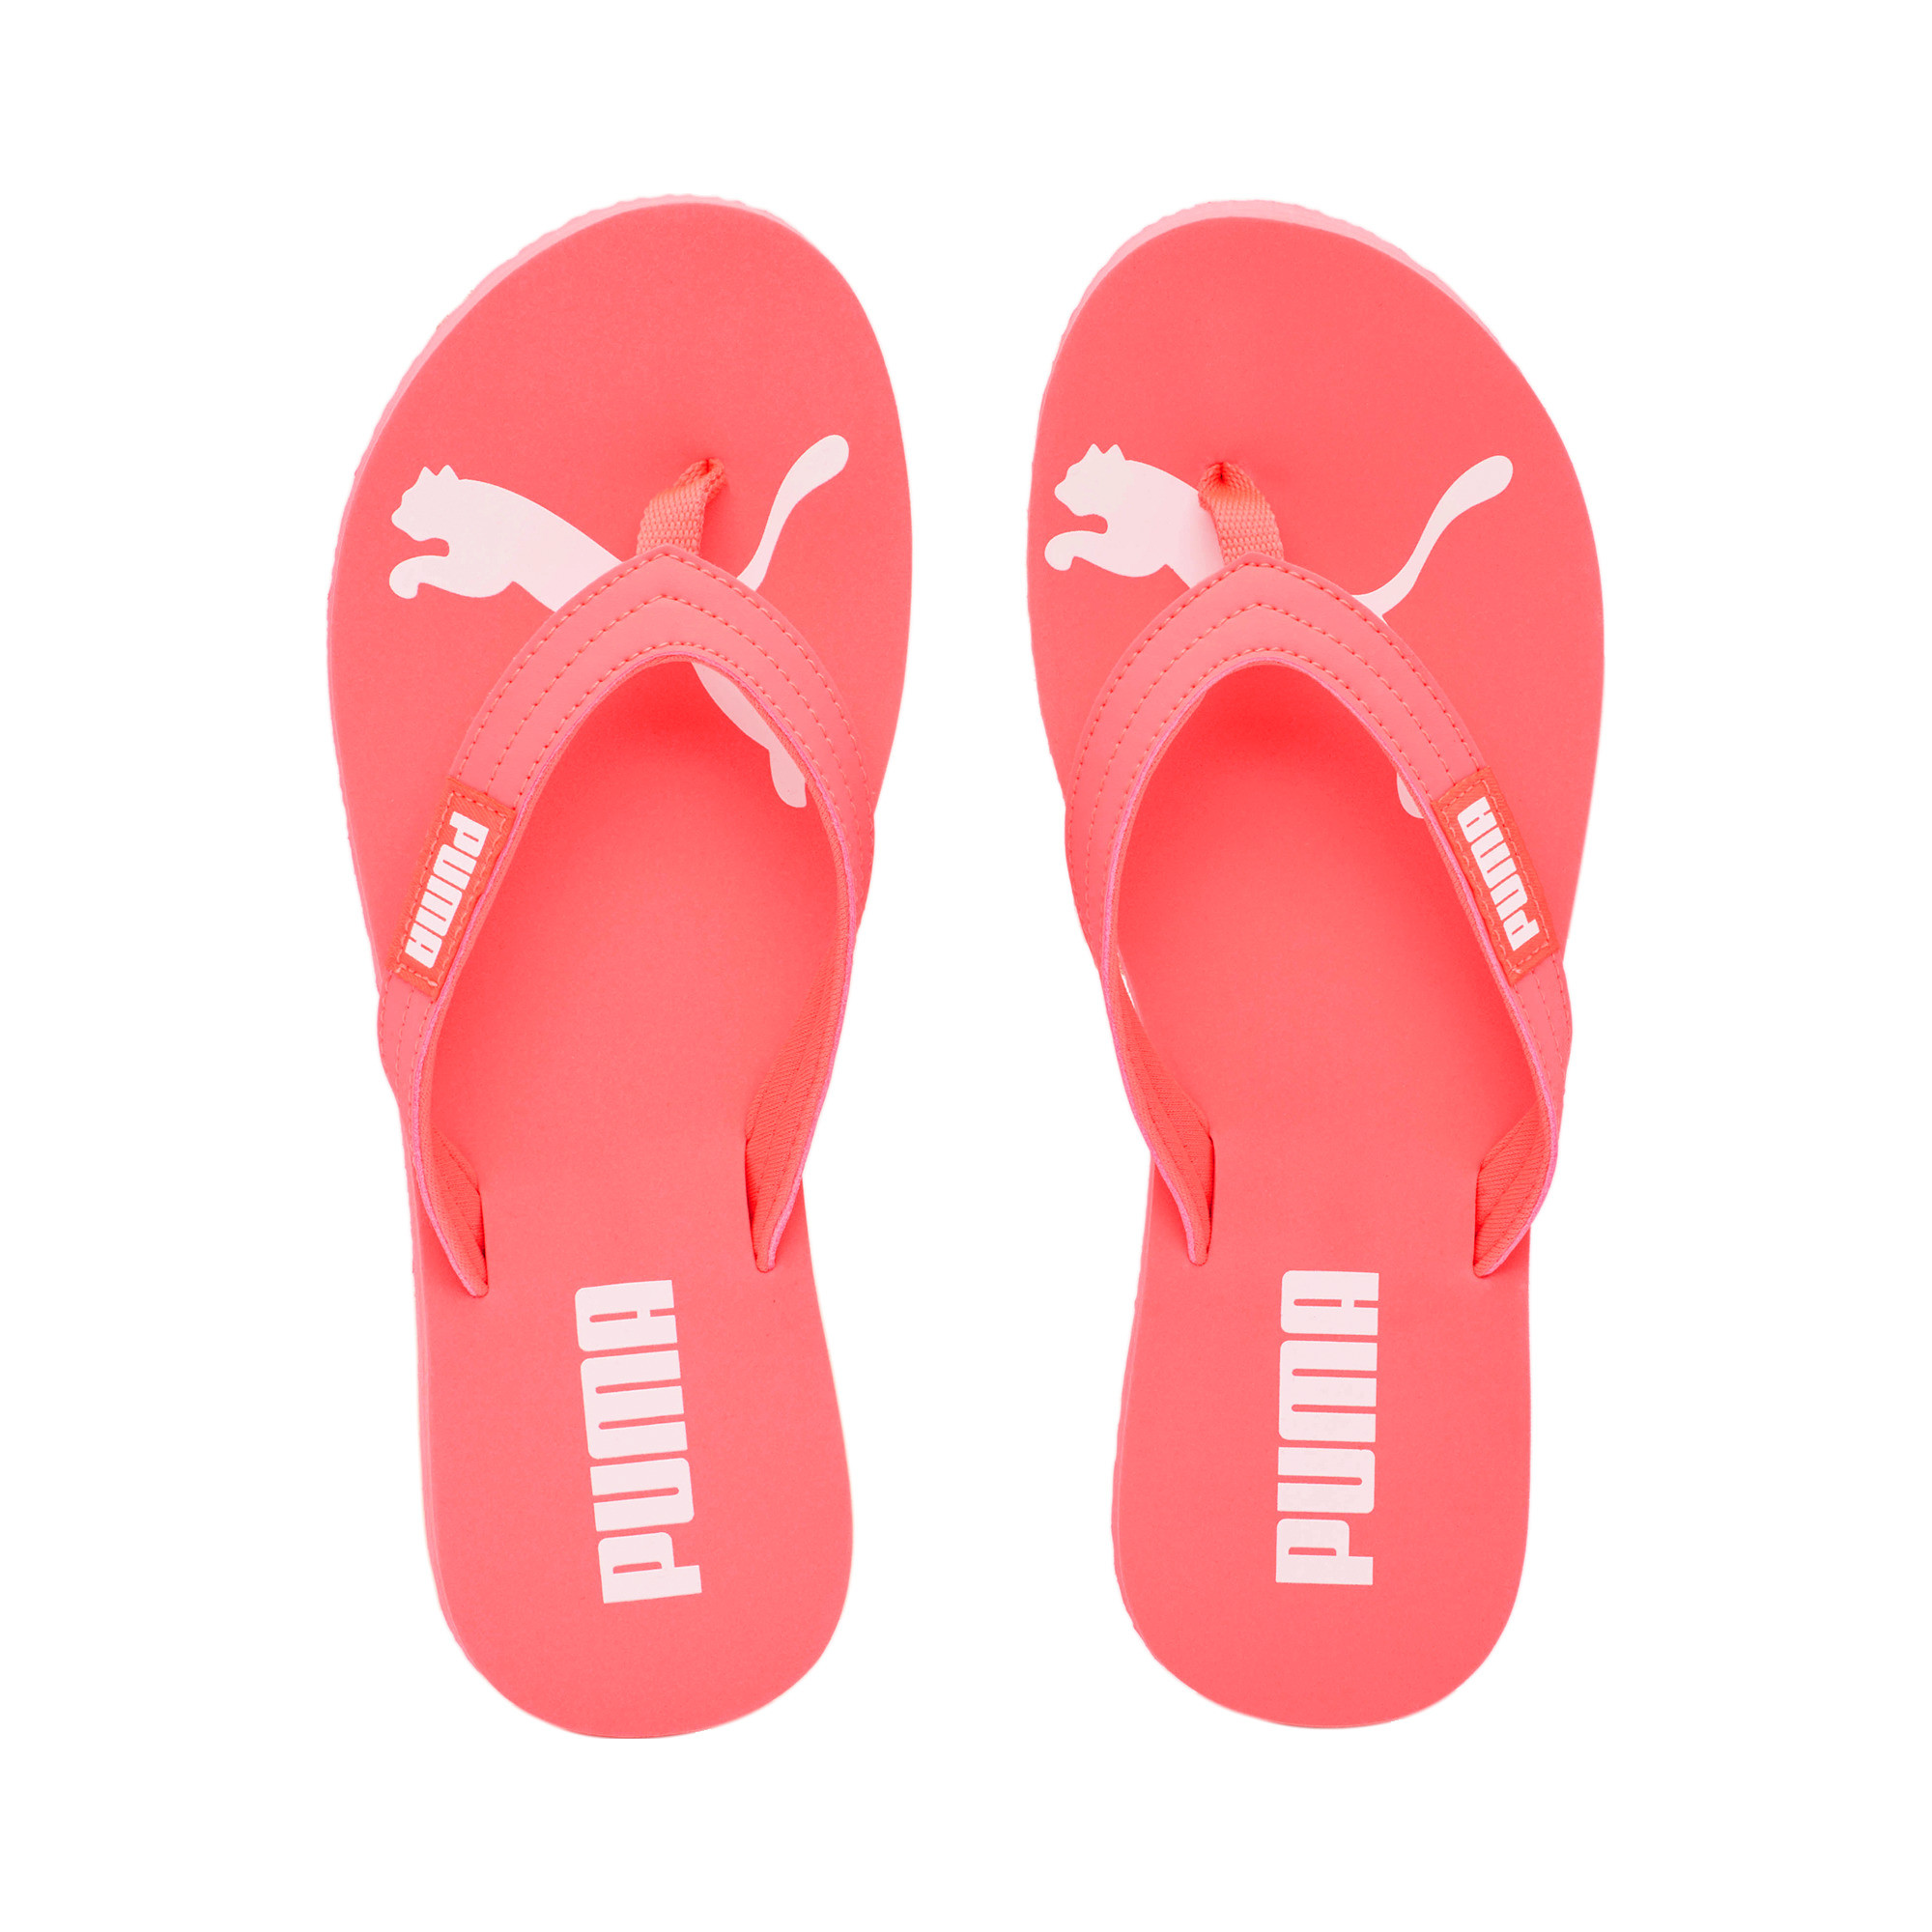 PUMA-Women-039-s-Cozy-Flip-Sandals thumbnail 19